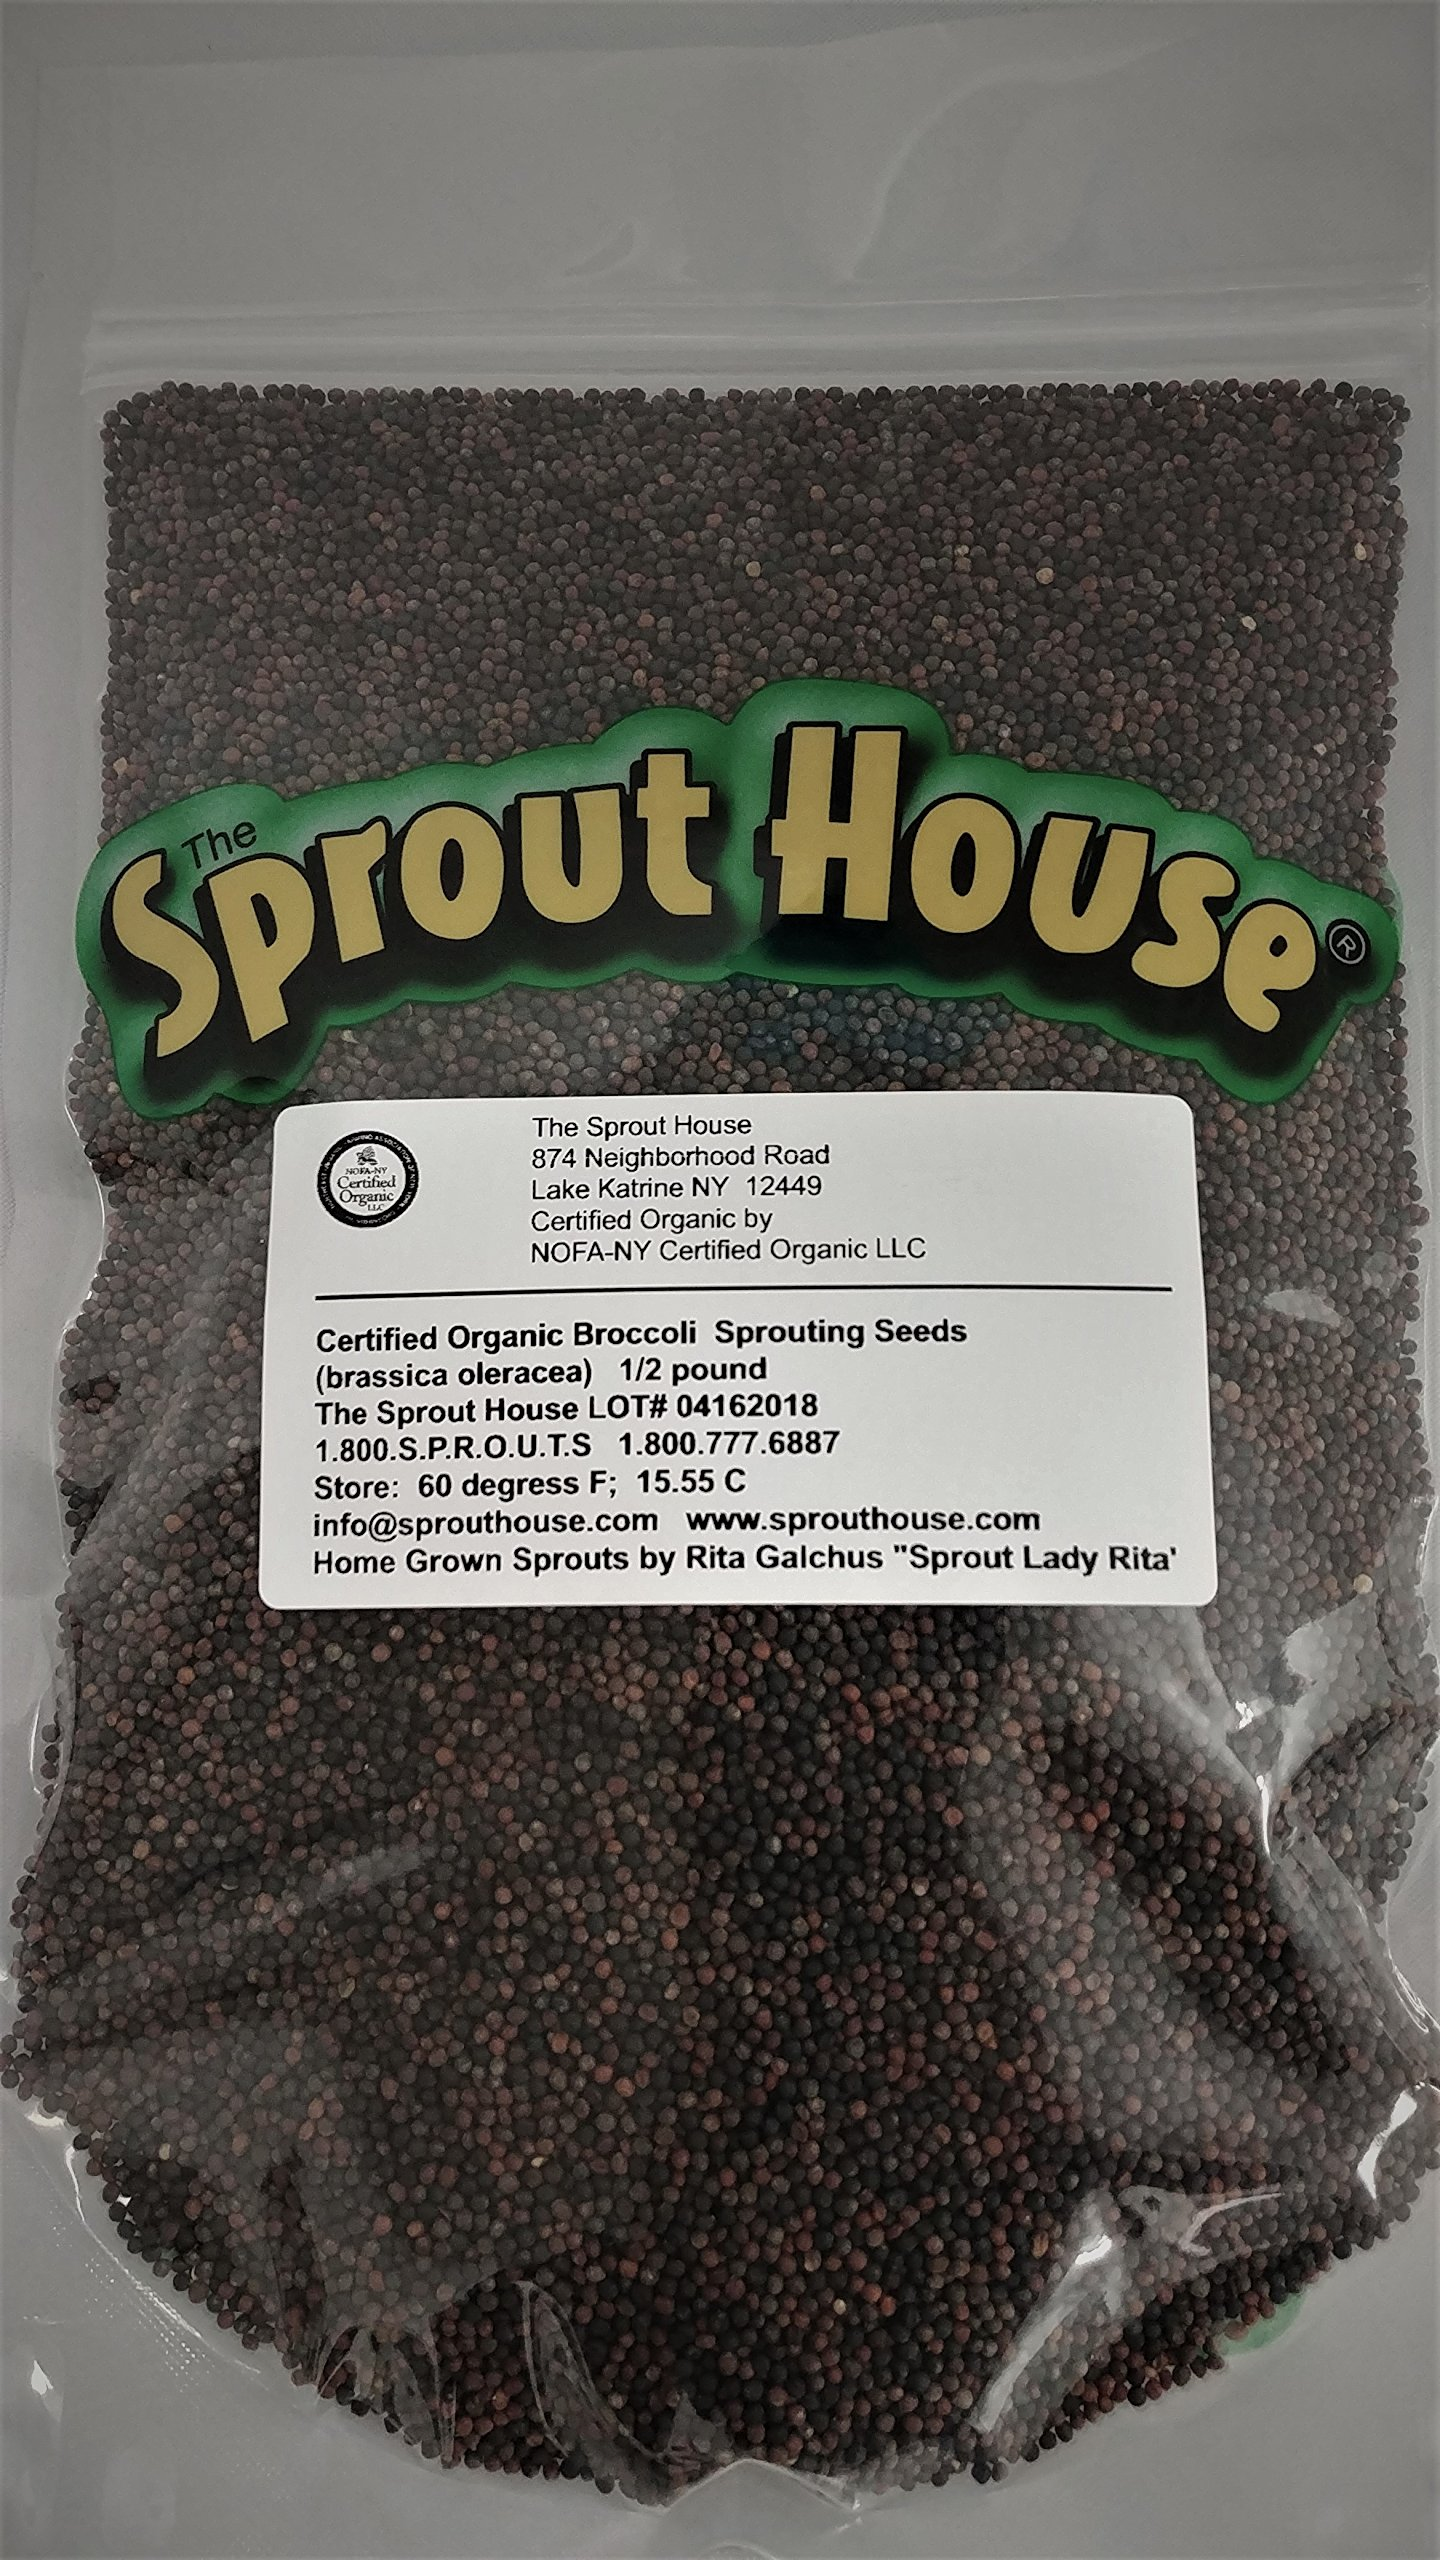 The Sprout House Broccoli Certified Organic Non-gmo Seeds for Sprouting 8 Ounces - 1/2 Pound by The Sprout House